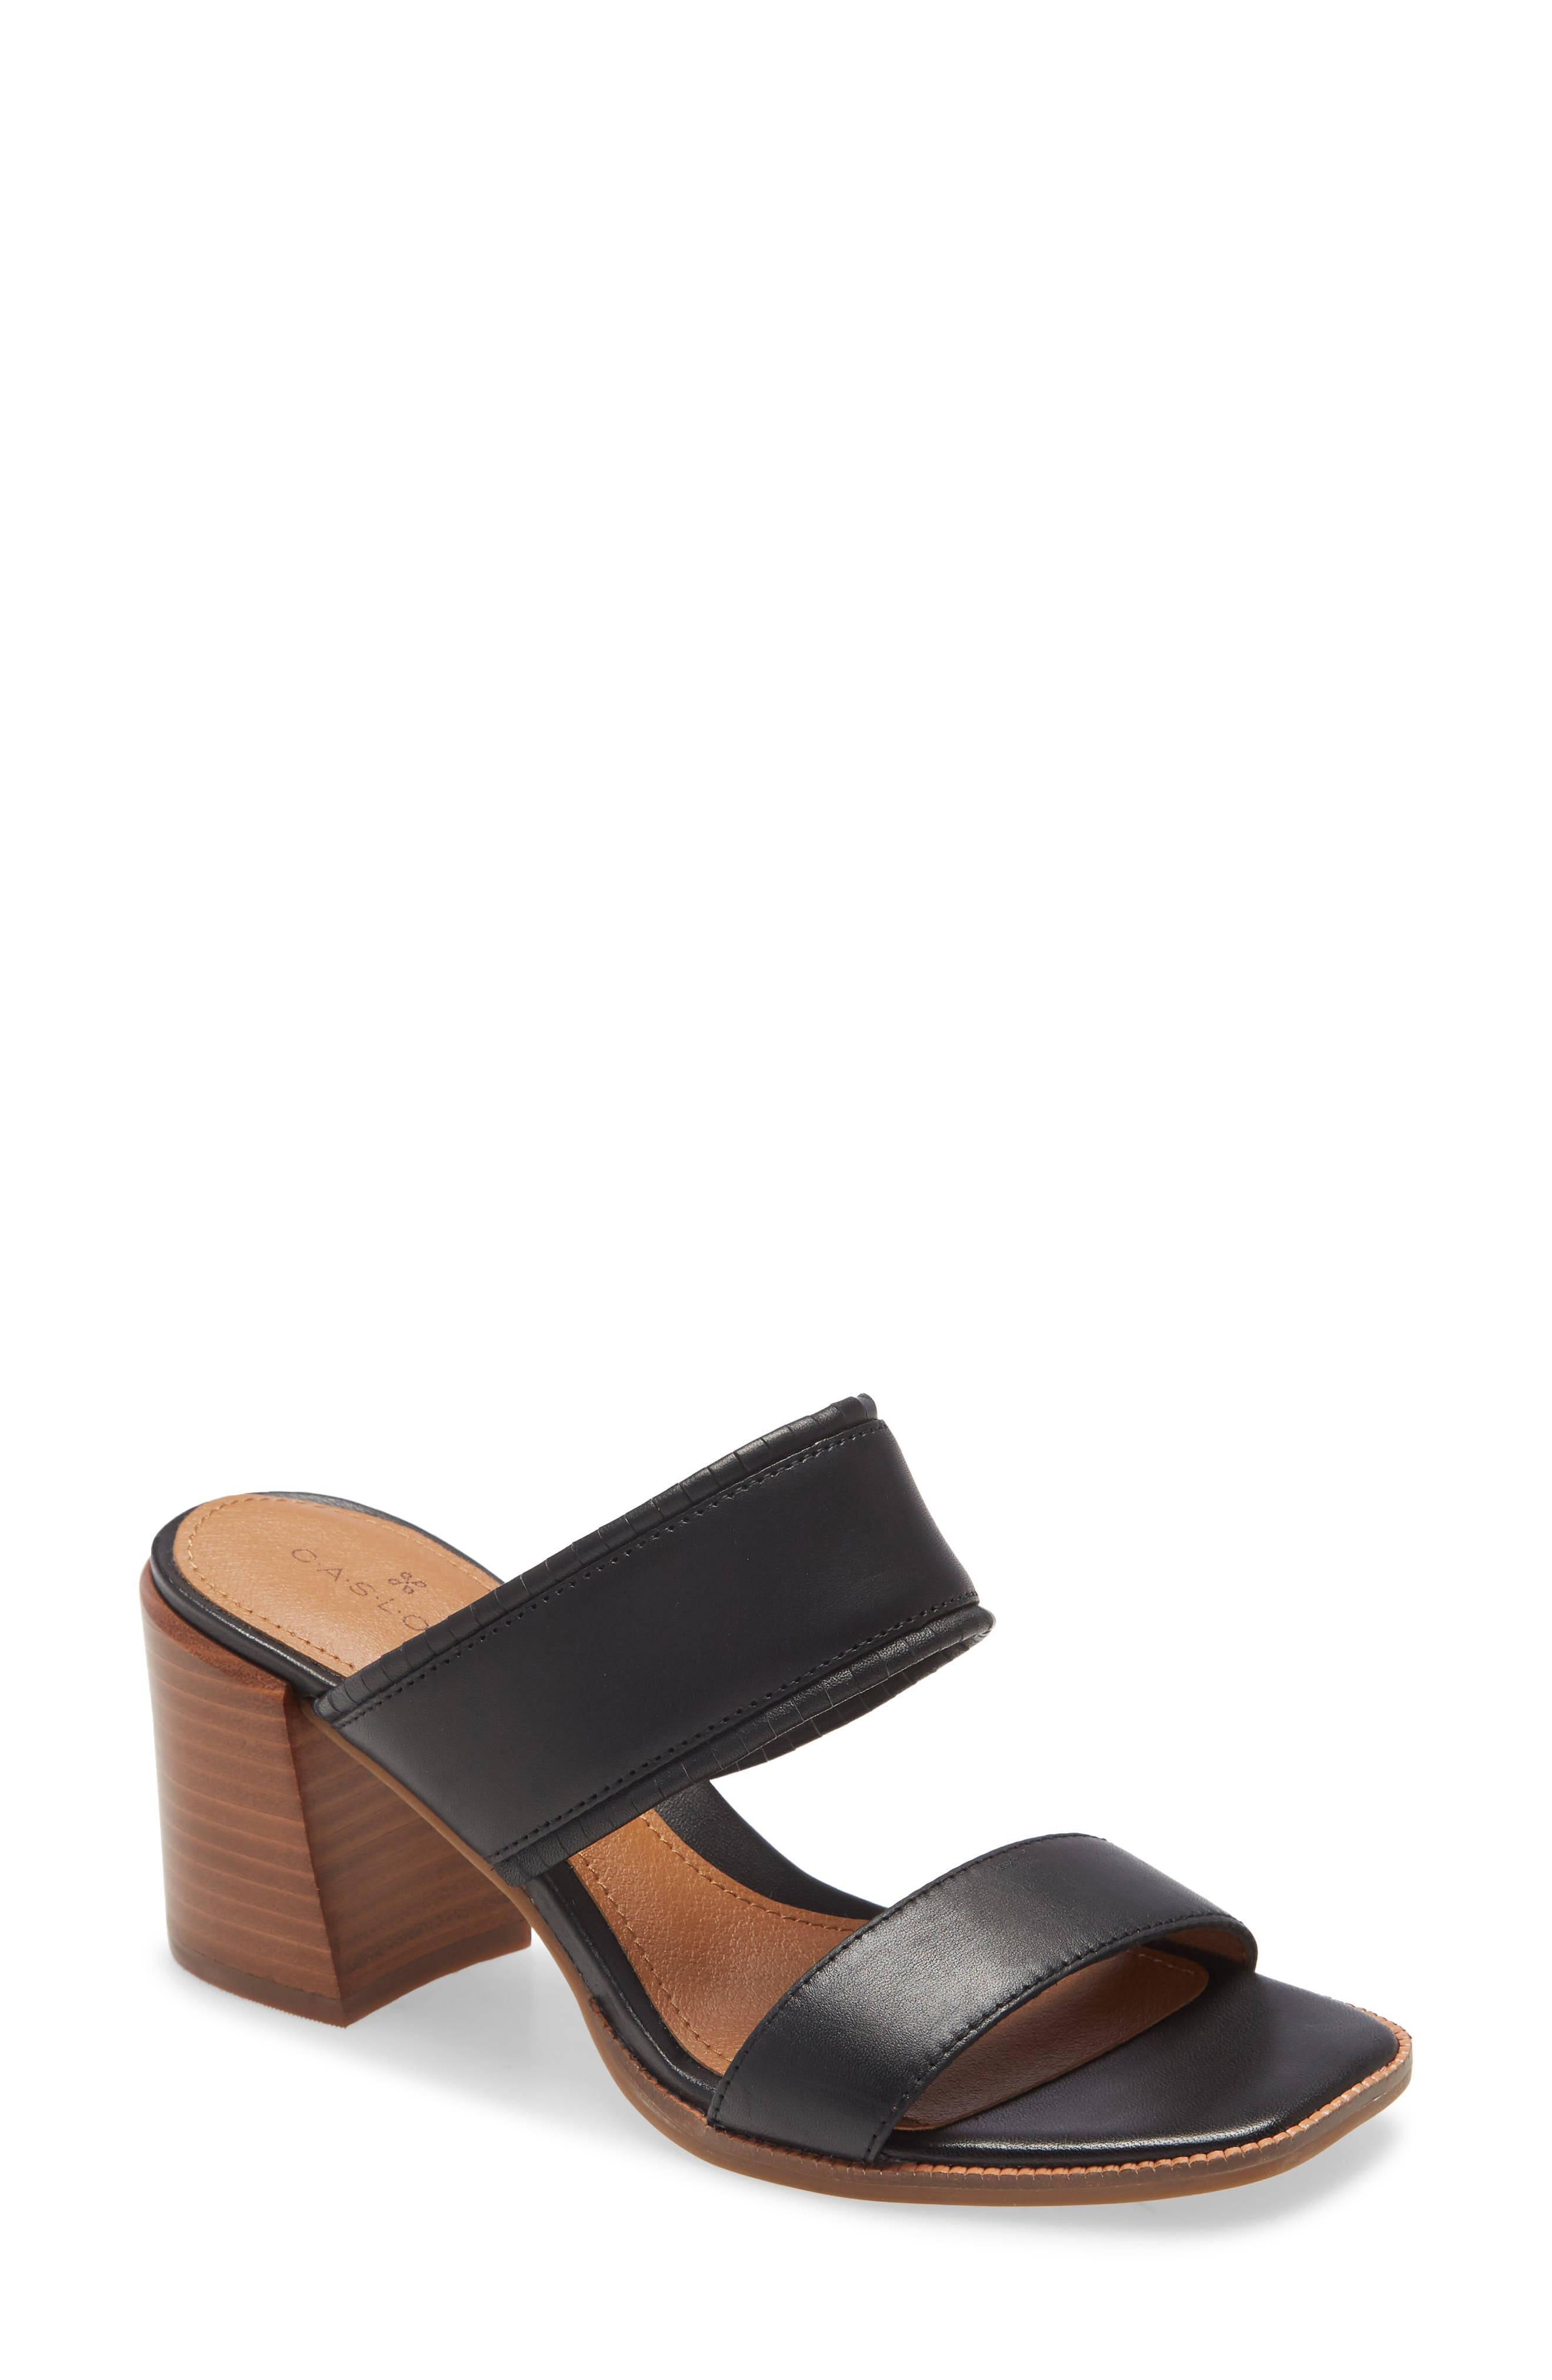 A chunky, stacked heel lifts a simplistic sandal that\\\'s comfy, timeless and chic. Style Name: Caslon Kalina Block Heel Slide Sandal (Women). Style Number: 5994594. Available in stores.